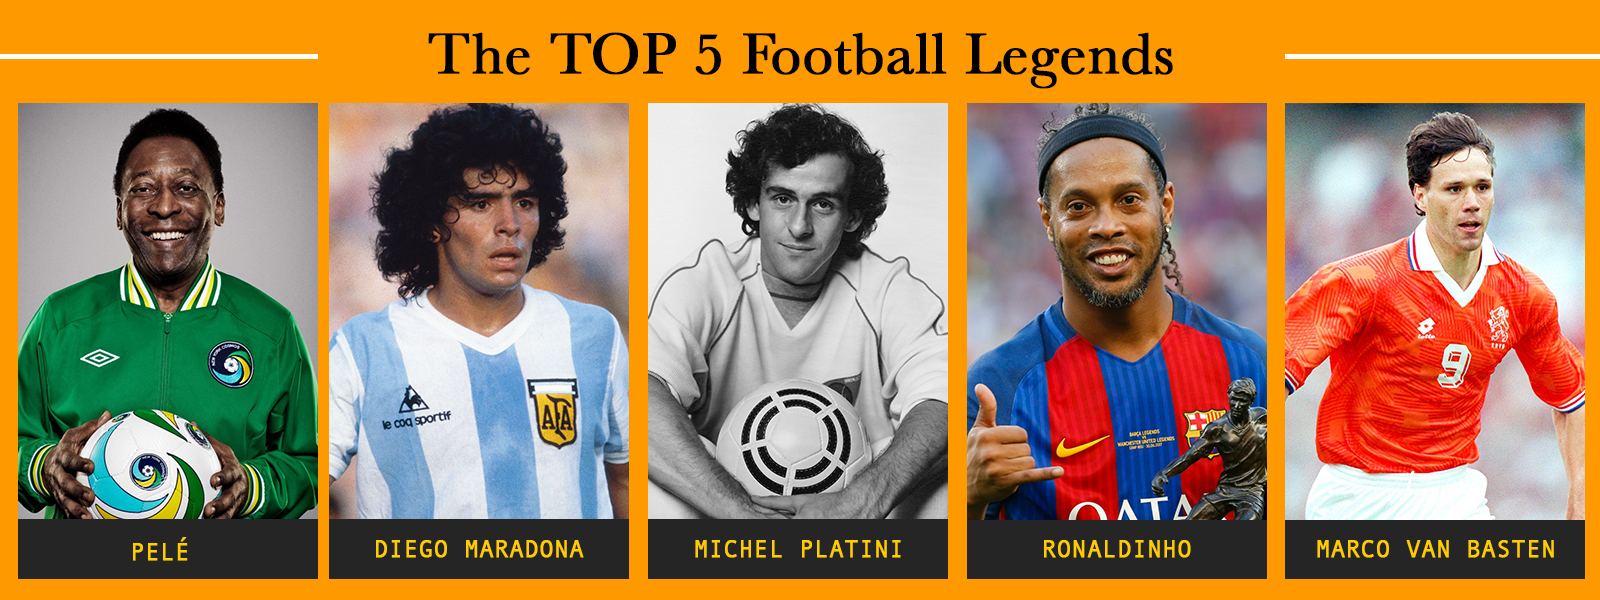 The Top 5 Football Legends